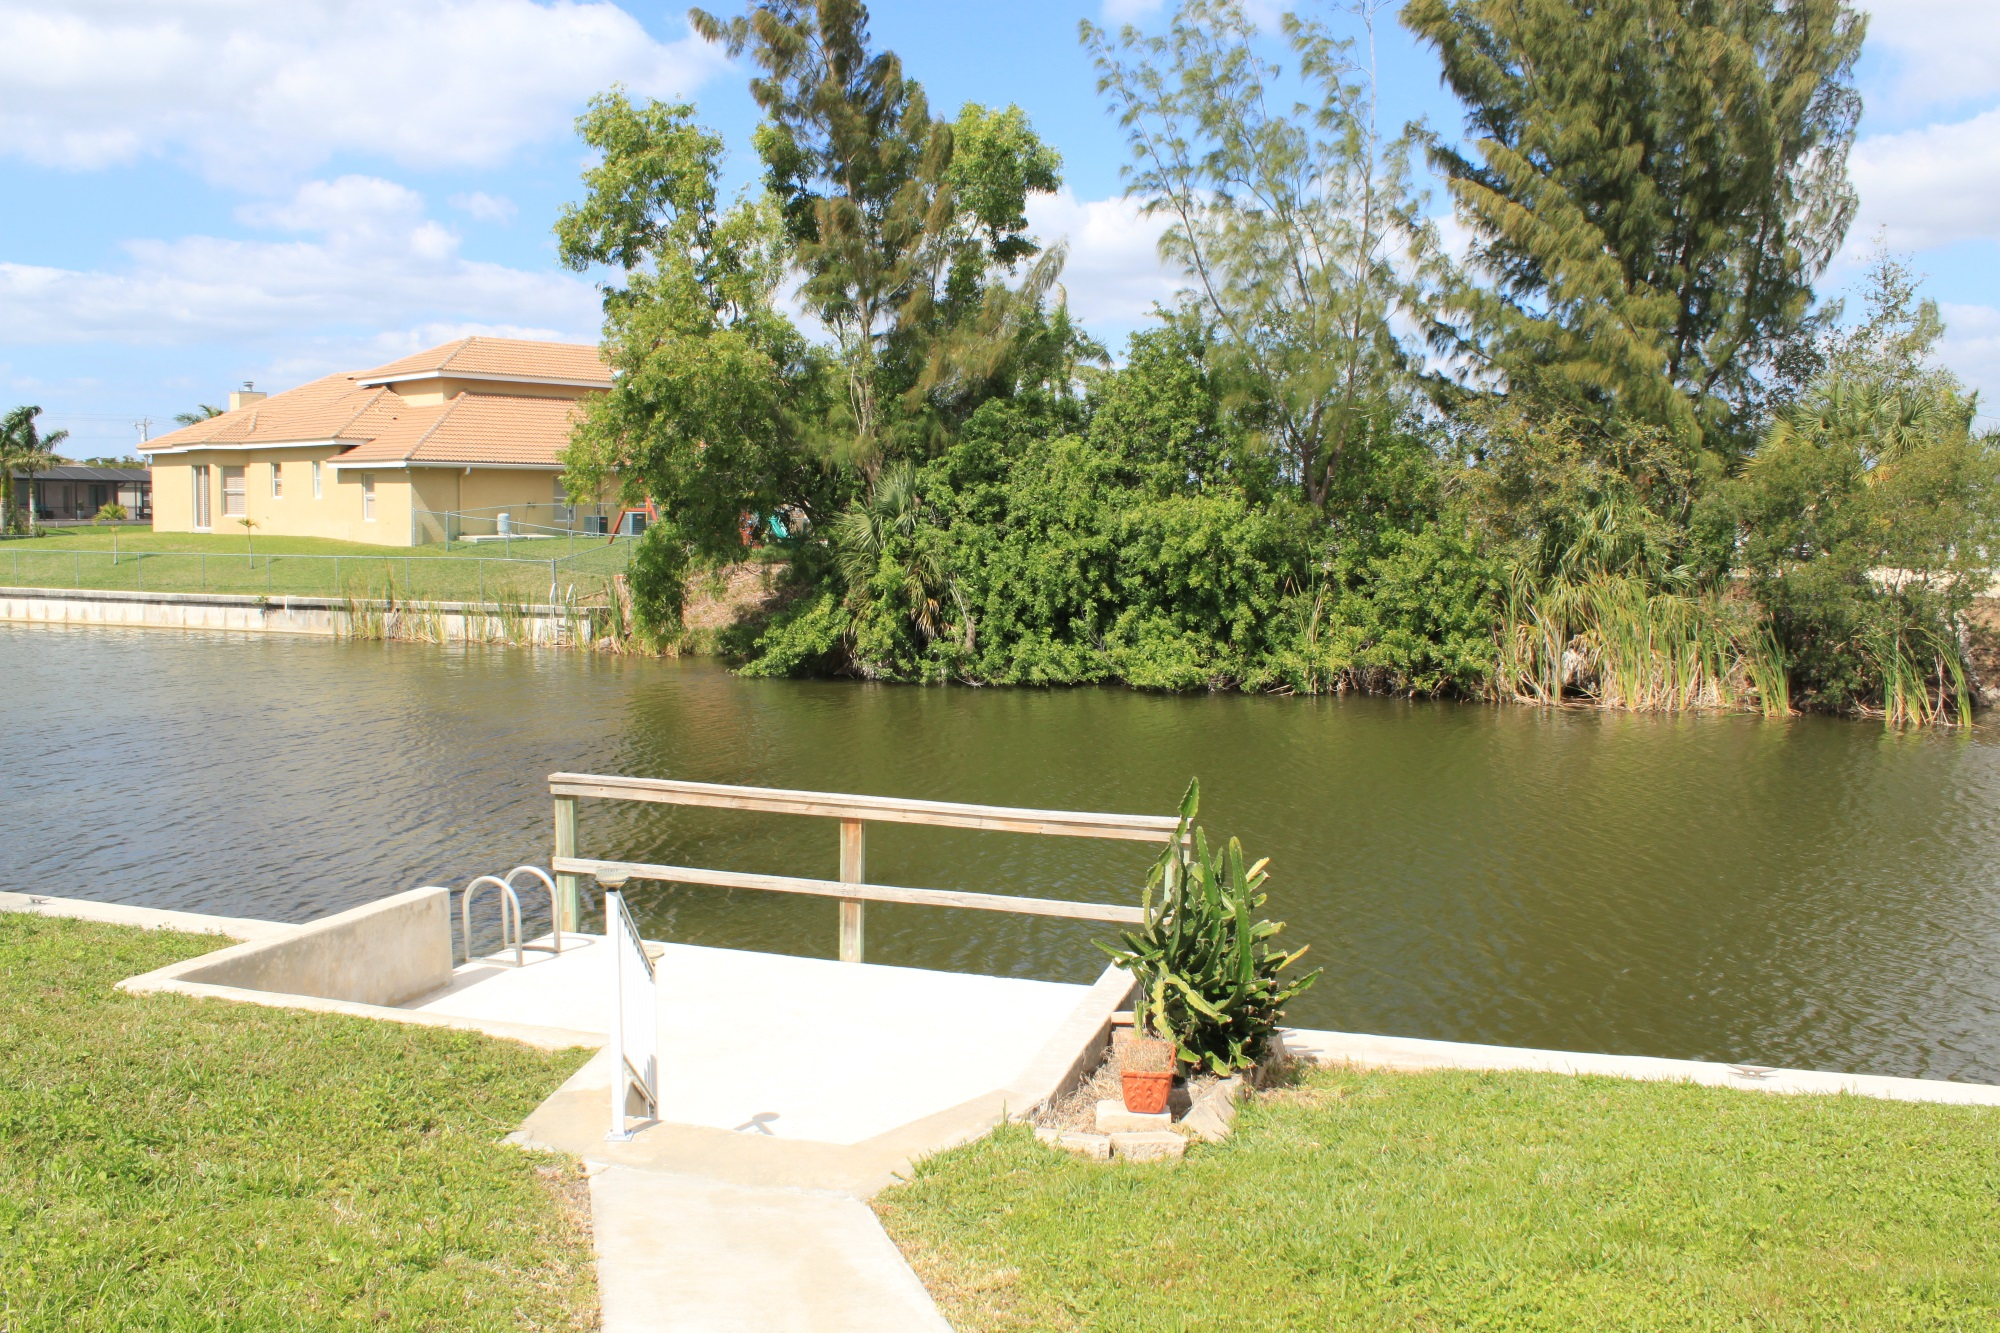 2327 SW 22nd St. Cape Coral, FL 33991 -Canal View 3